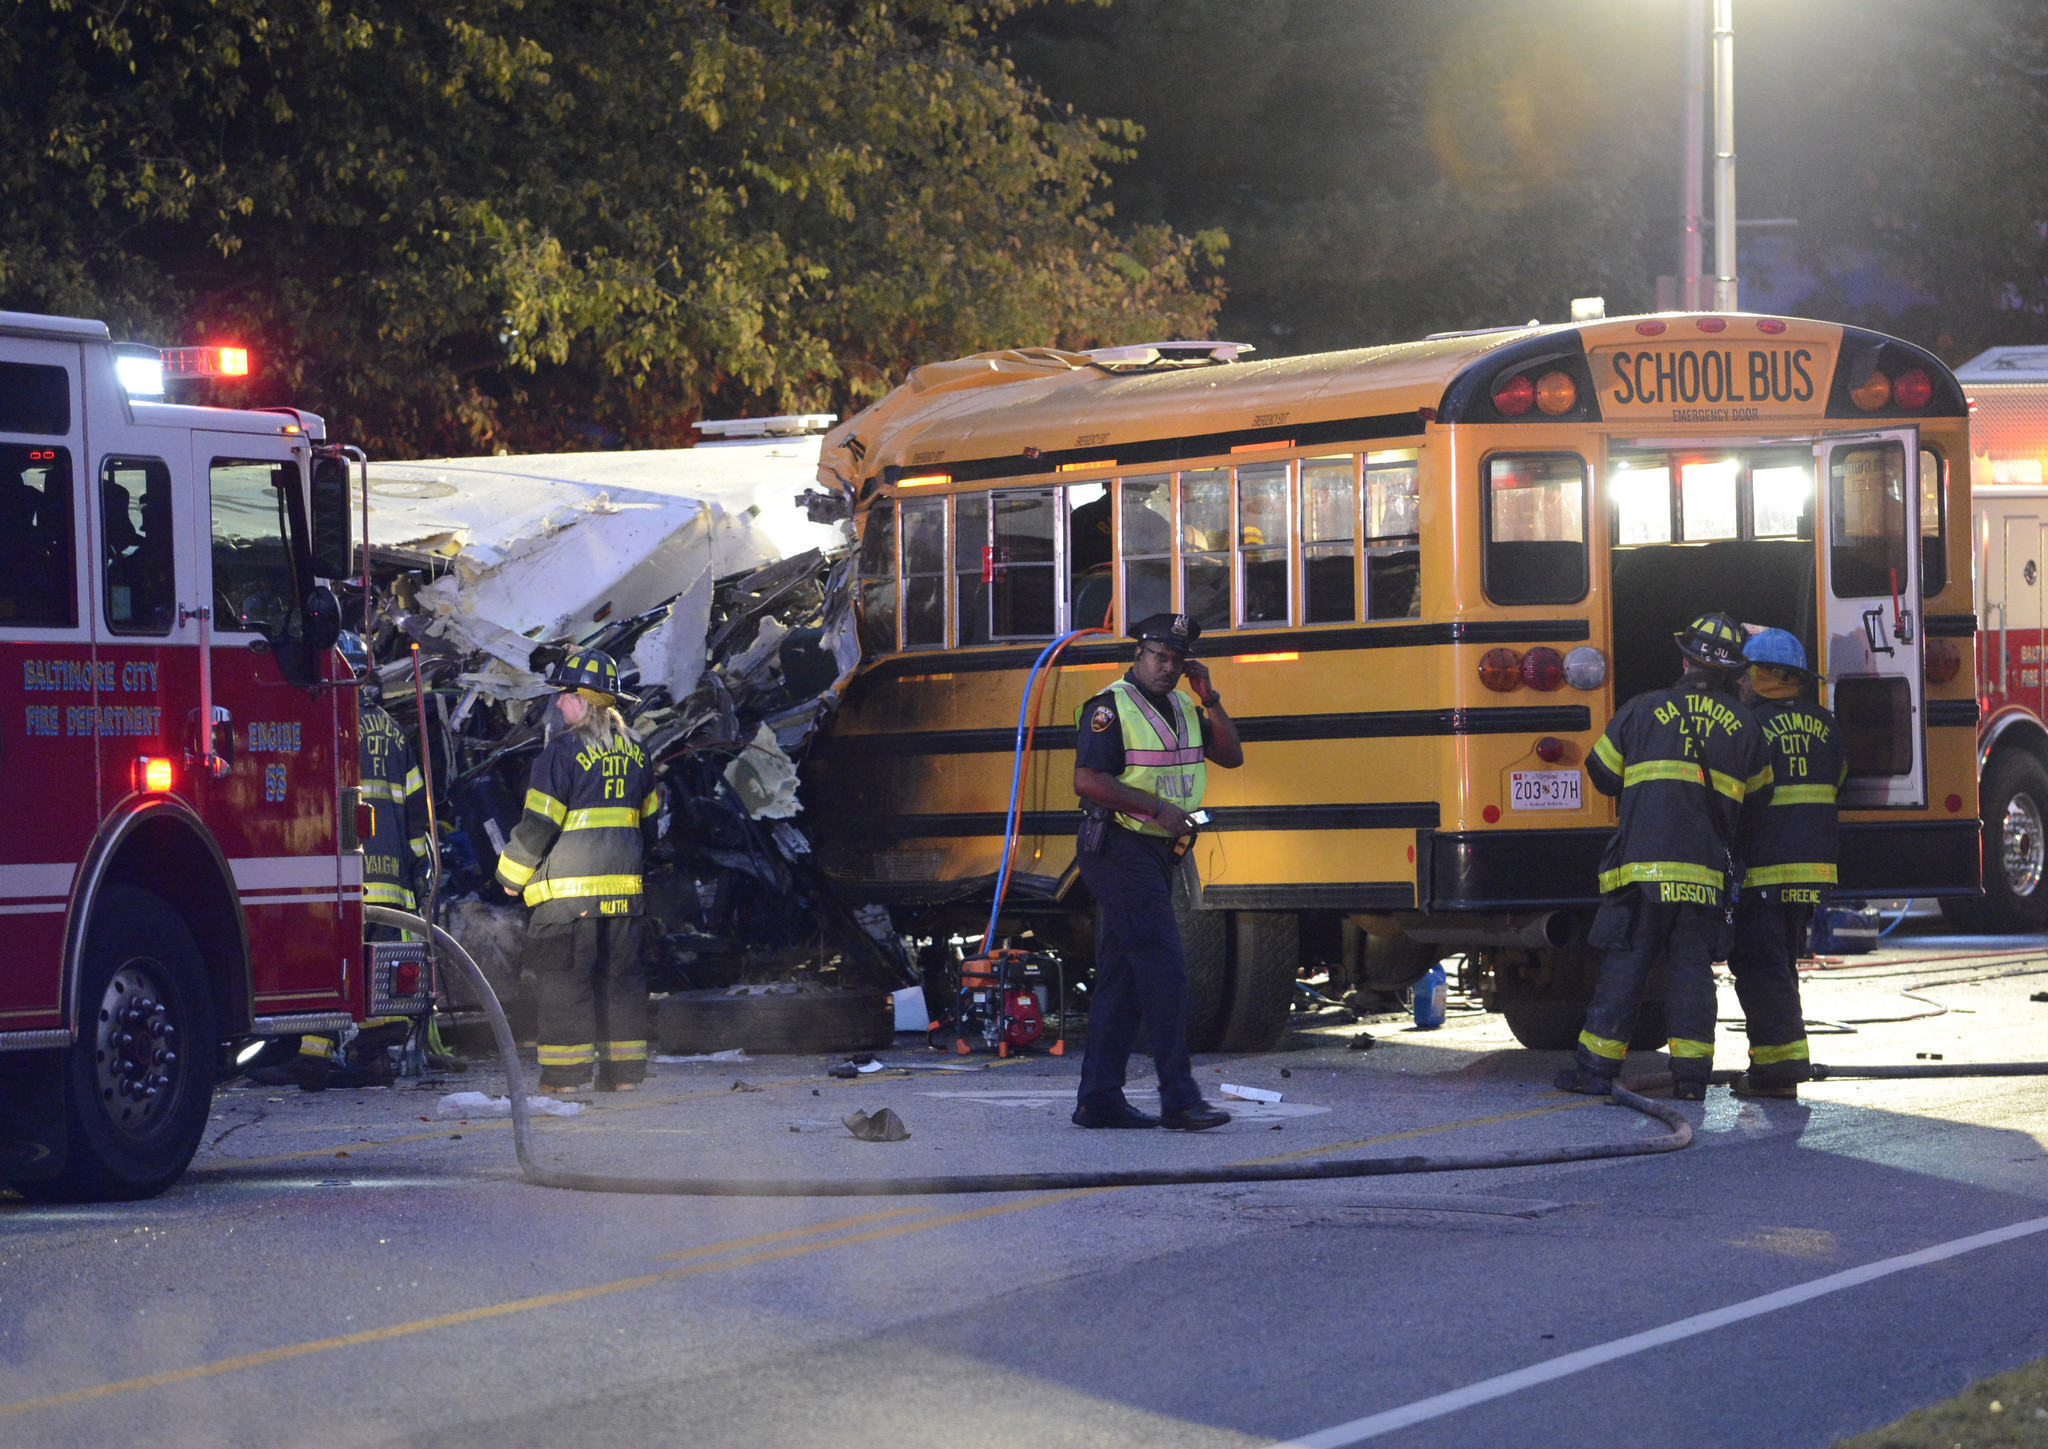 Cummings, Tenn. Congressmen Call For Hearing On School Bus Safety After Deadly Crashes